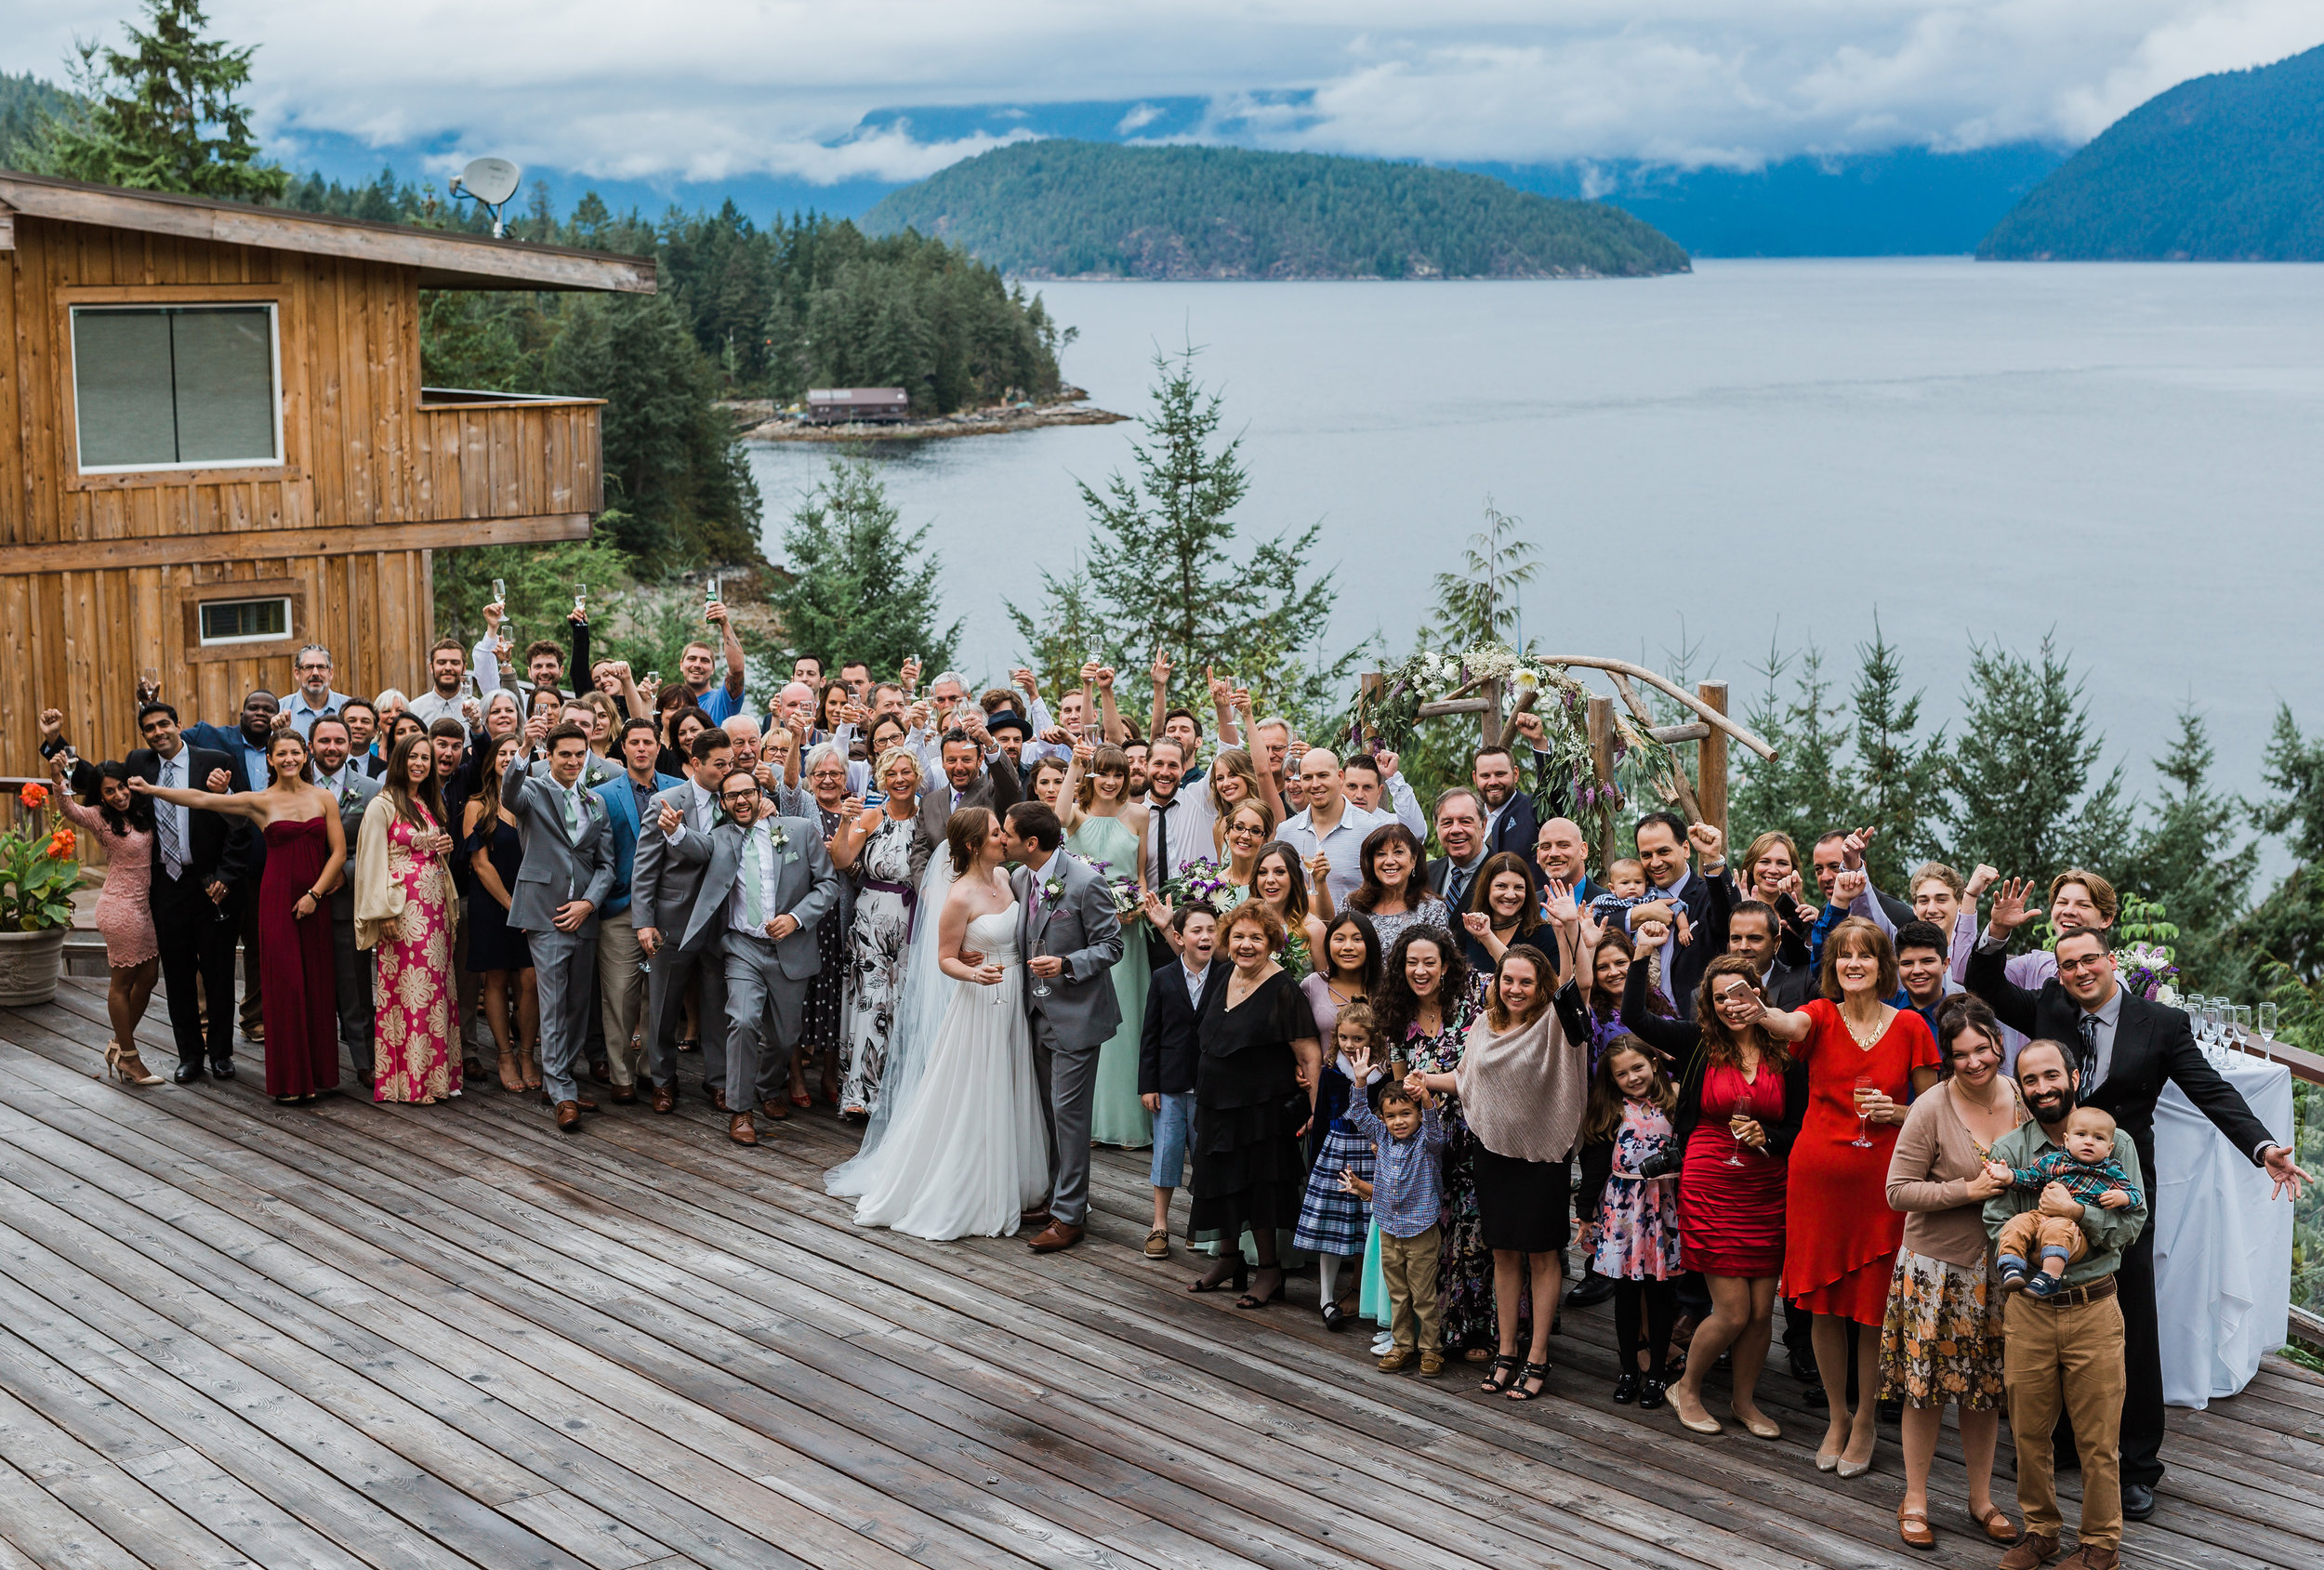 West Coast Wilderness Lodge Wedding Photos - Vancouver Wedding Photographer & Videographer - Sunshine Coast Wedding Photos - Sunshine Coast Wedding Photographer - Jennifer Picard Photography - IMG_5223.jpg